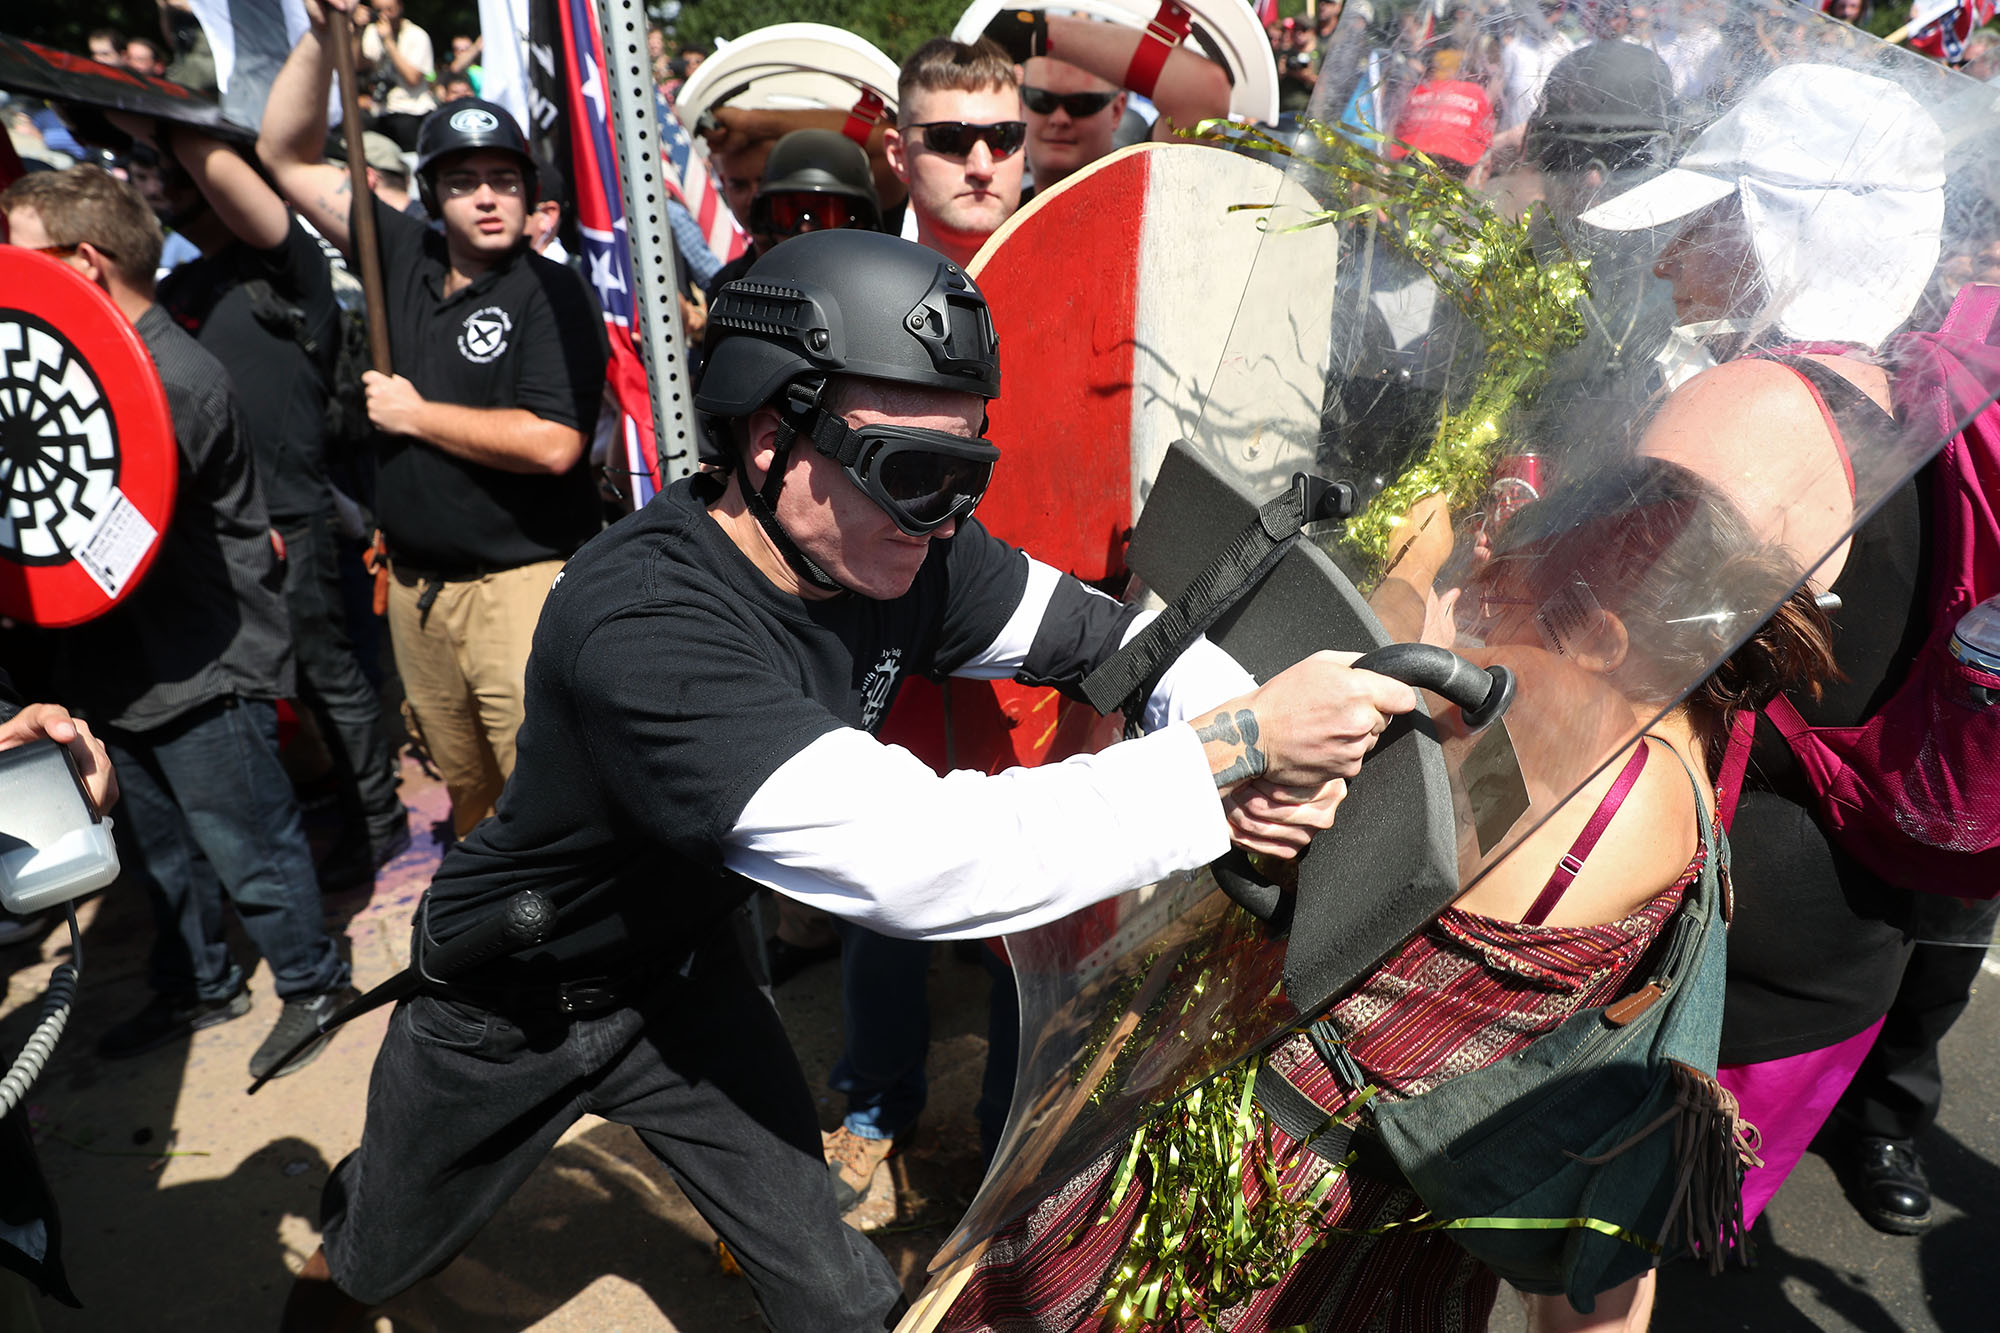 Alt-Right groups clash with counter-protesters outside Emancipation Park before the scheduled start of the Unite the Right rally in Charlottesville on Saturday, August 12, 2017.